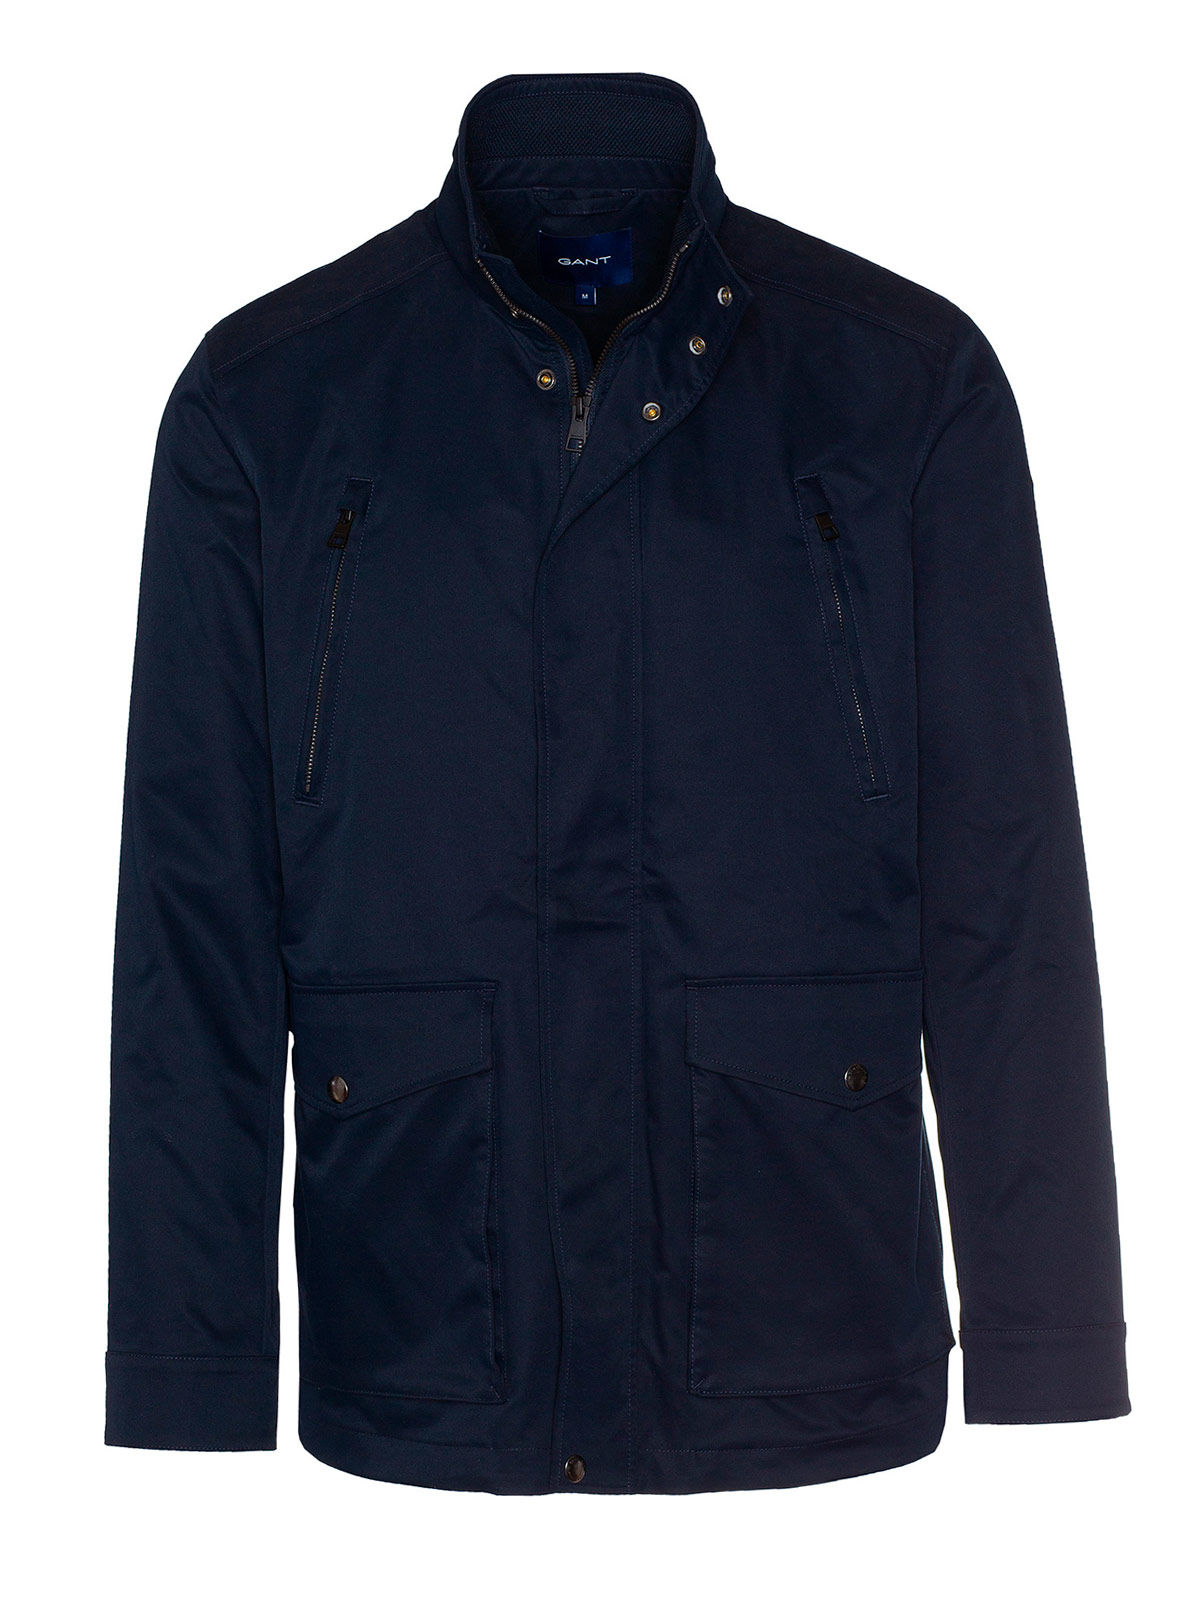 Picture of GANT | Giubbotti O1. THE COMFORT AVENUE JACKET